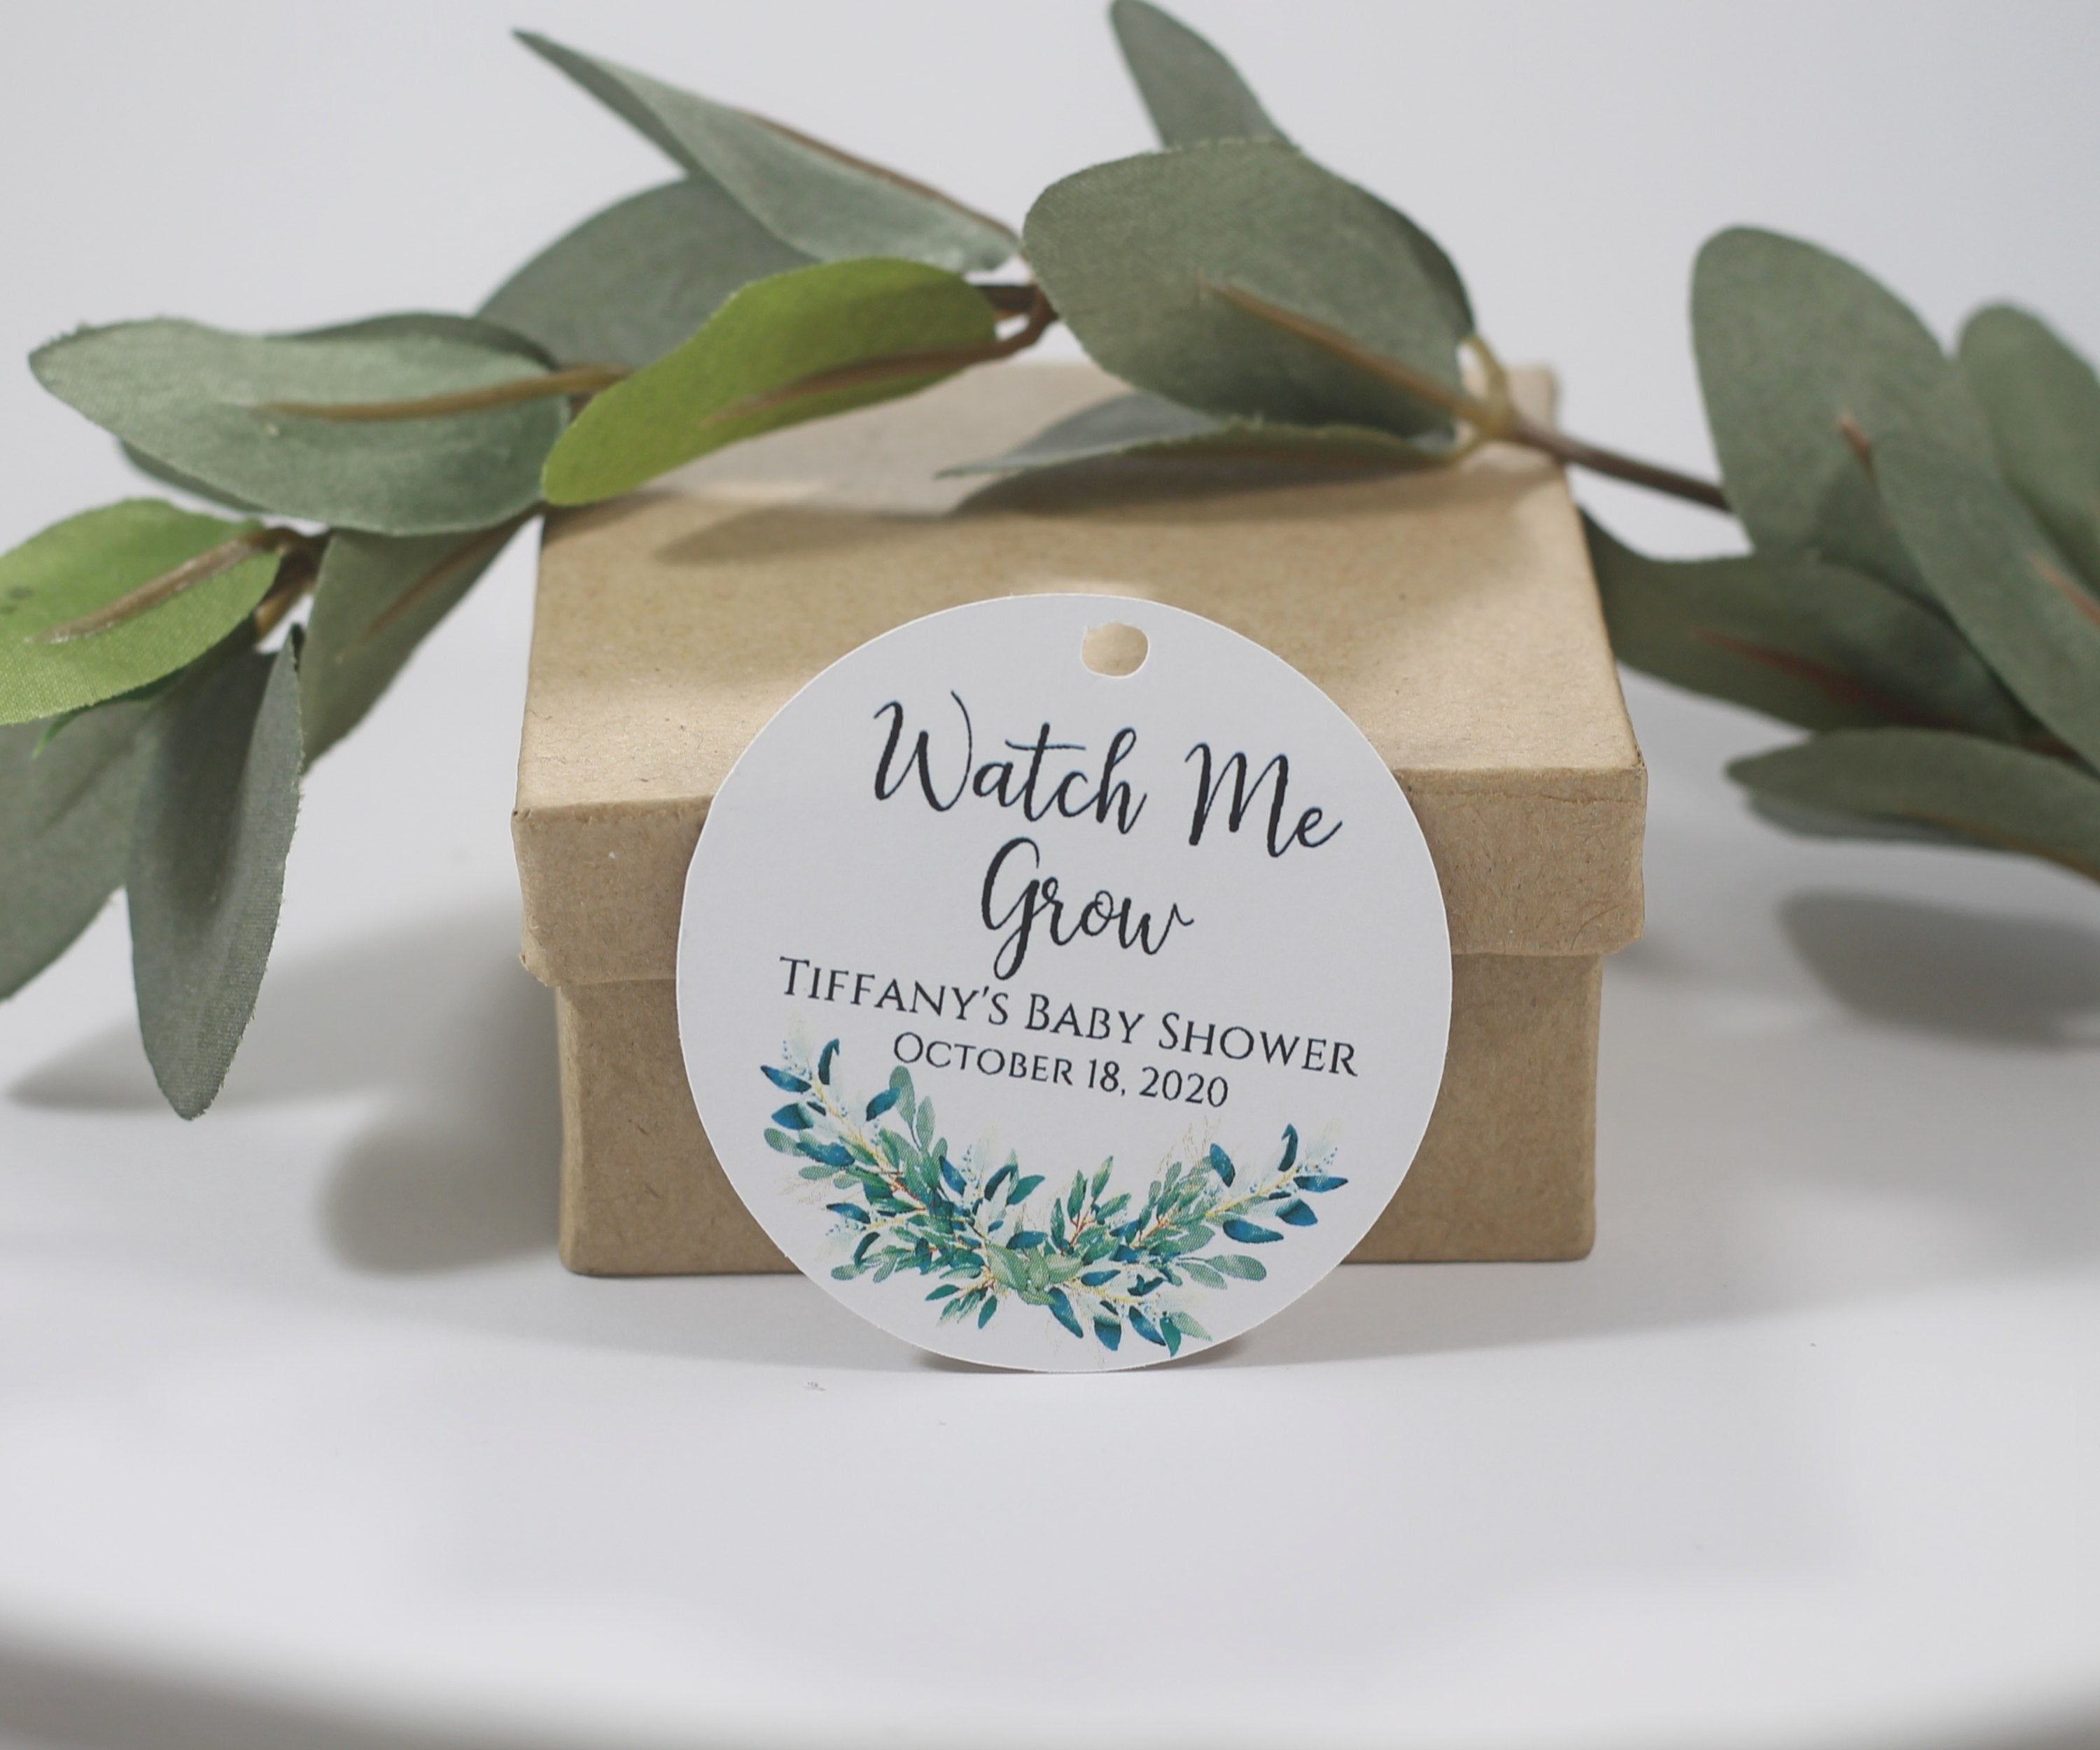 Baby Shower Tags - Circle Shape - Watch Me Grow - Greenery - White - 20pc